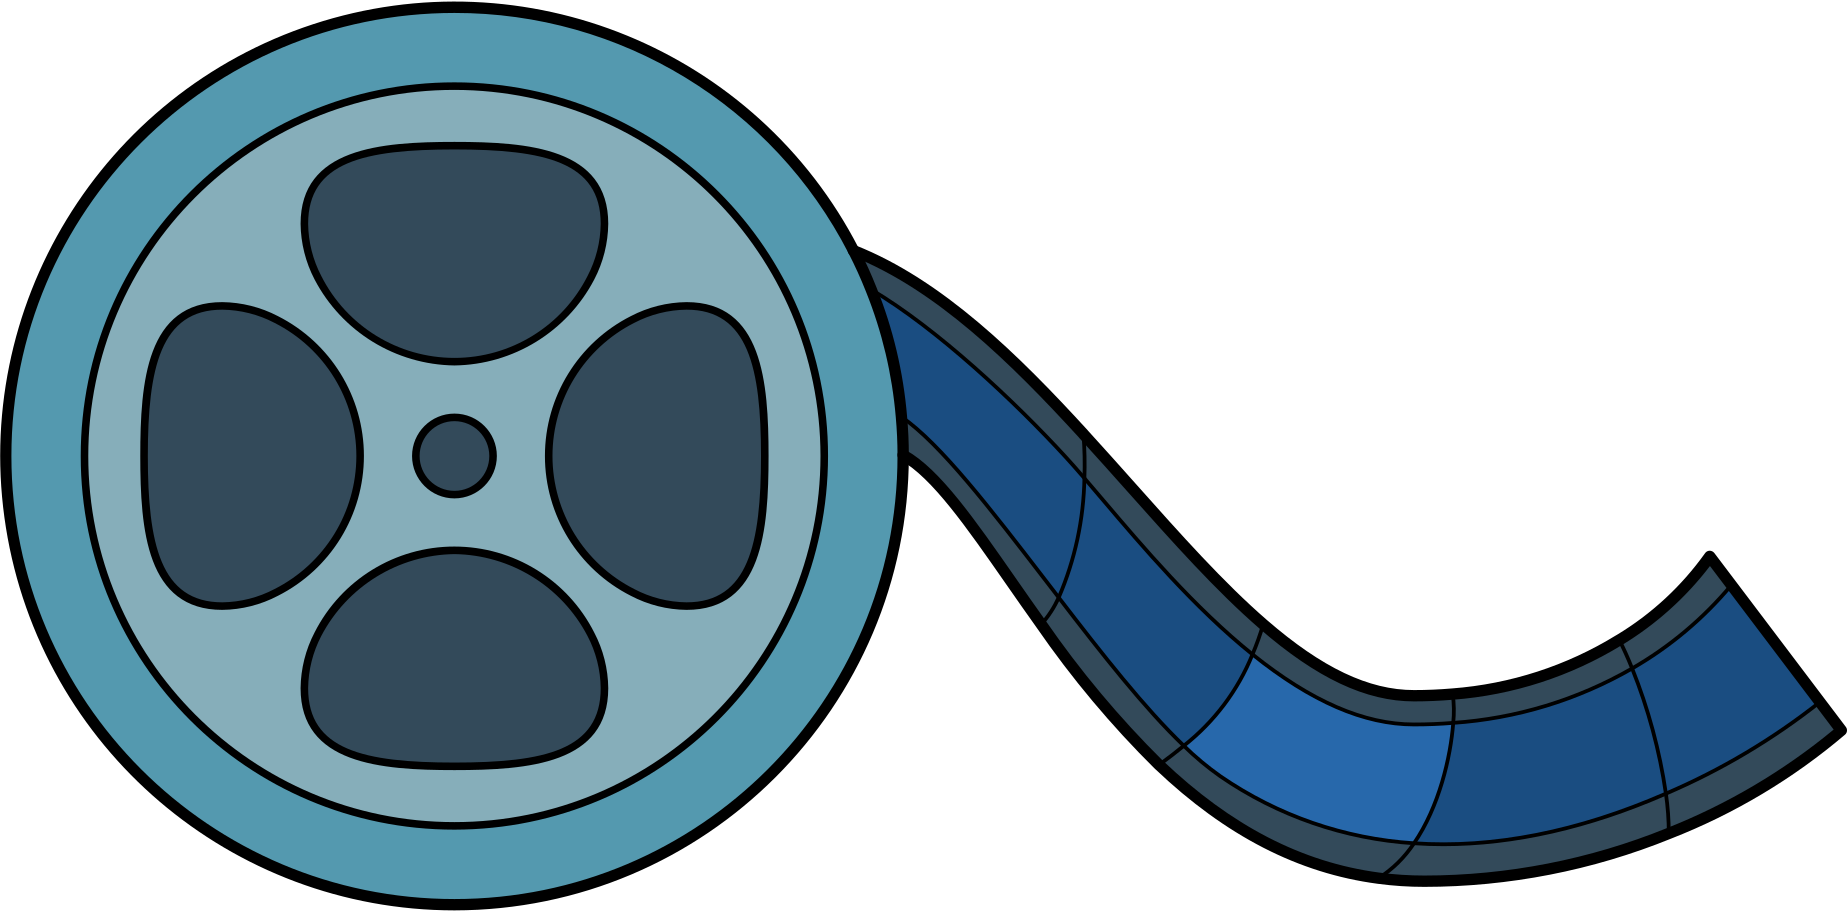 style movie film images in PNG and SVG | Icons8 Illustrations